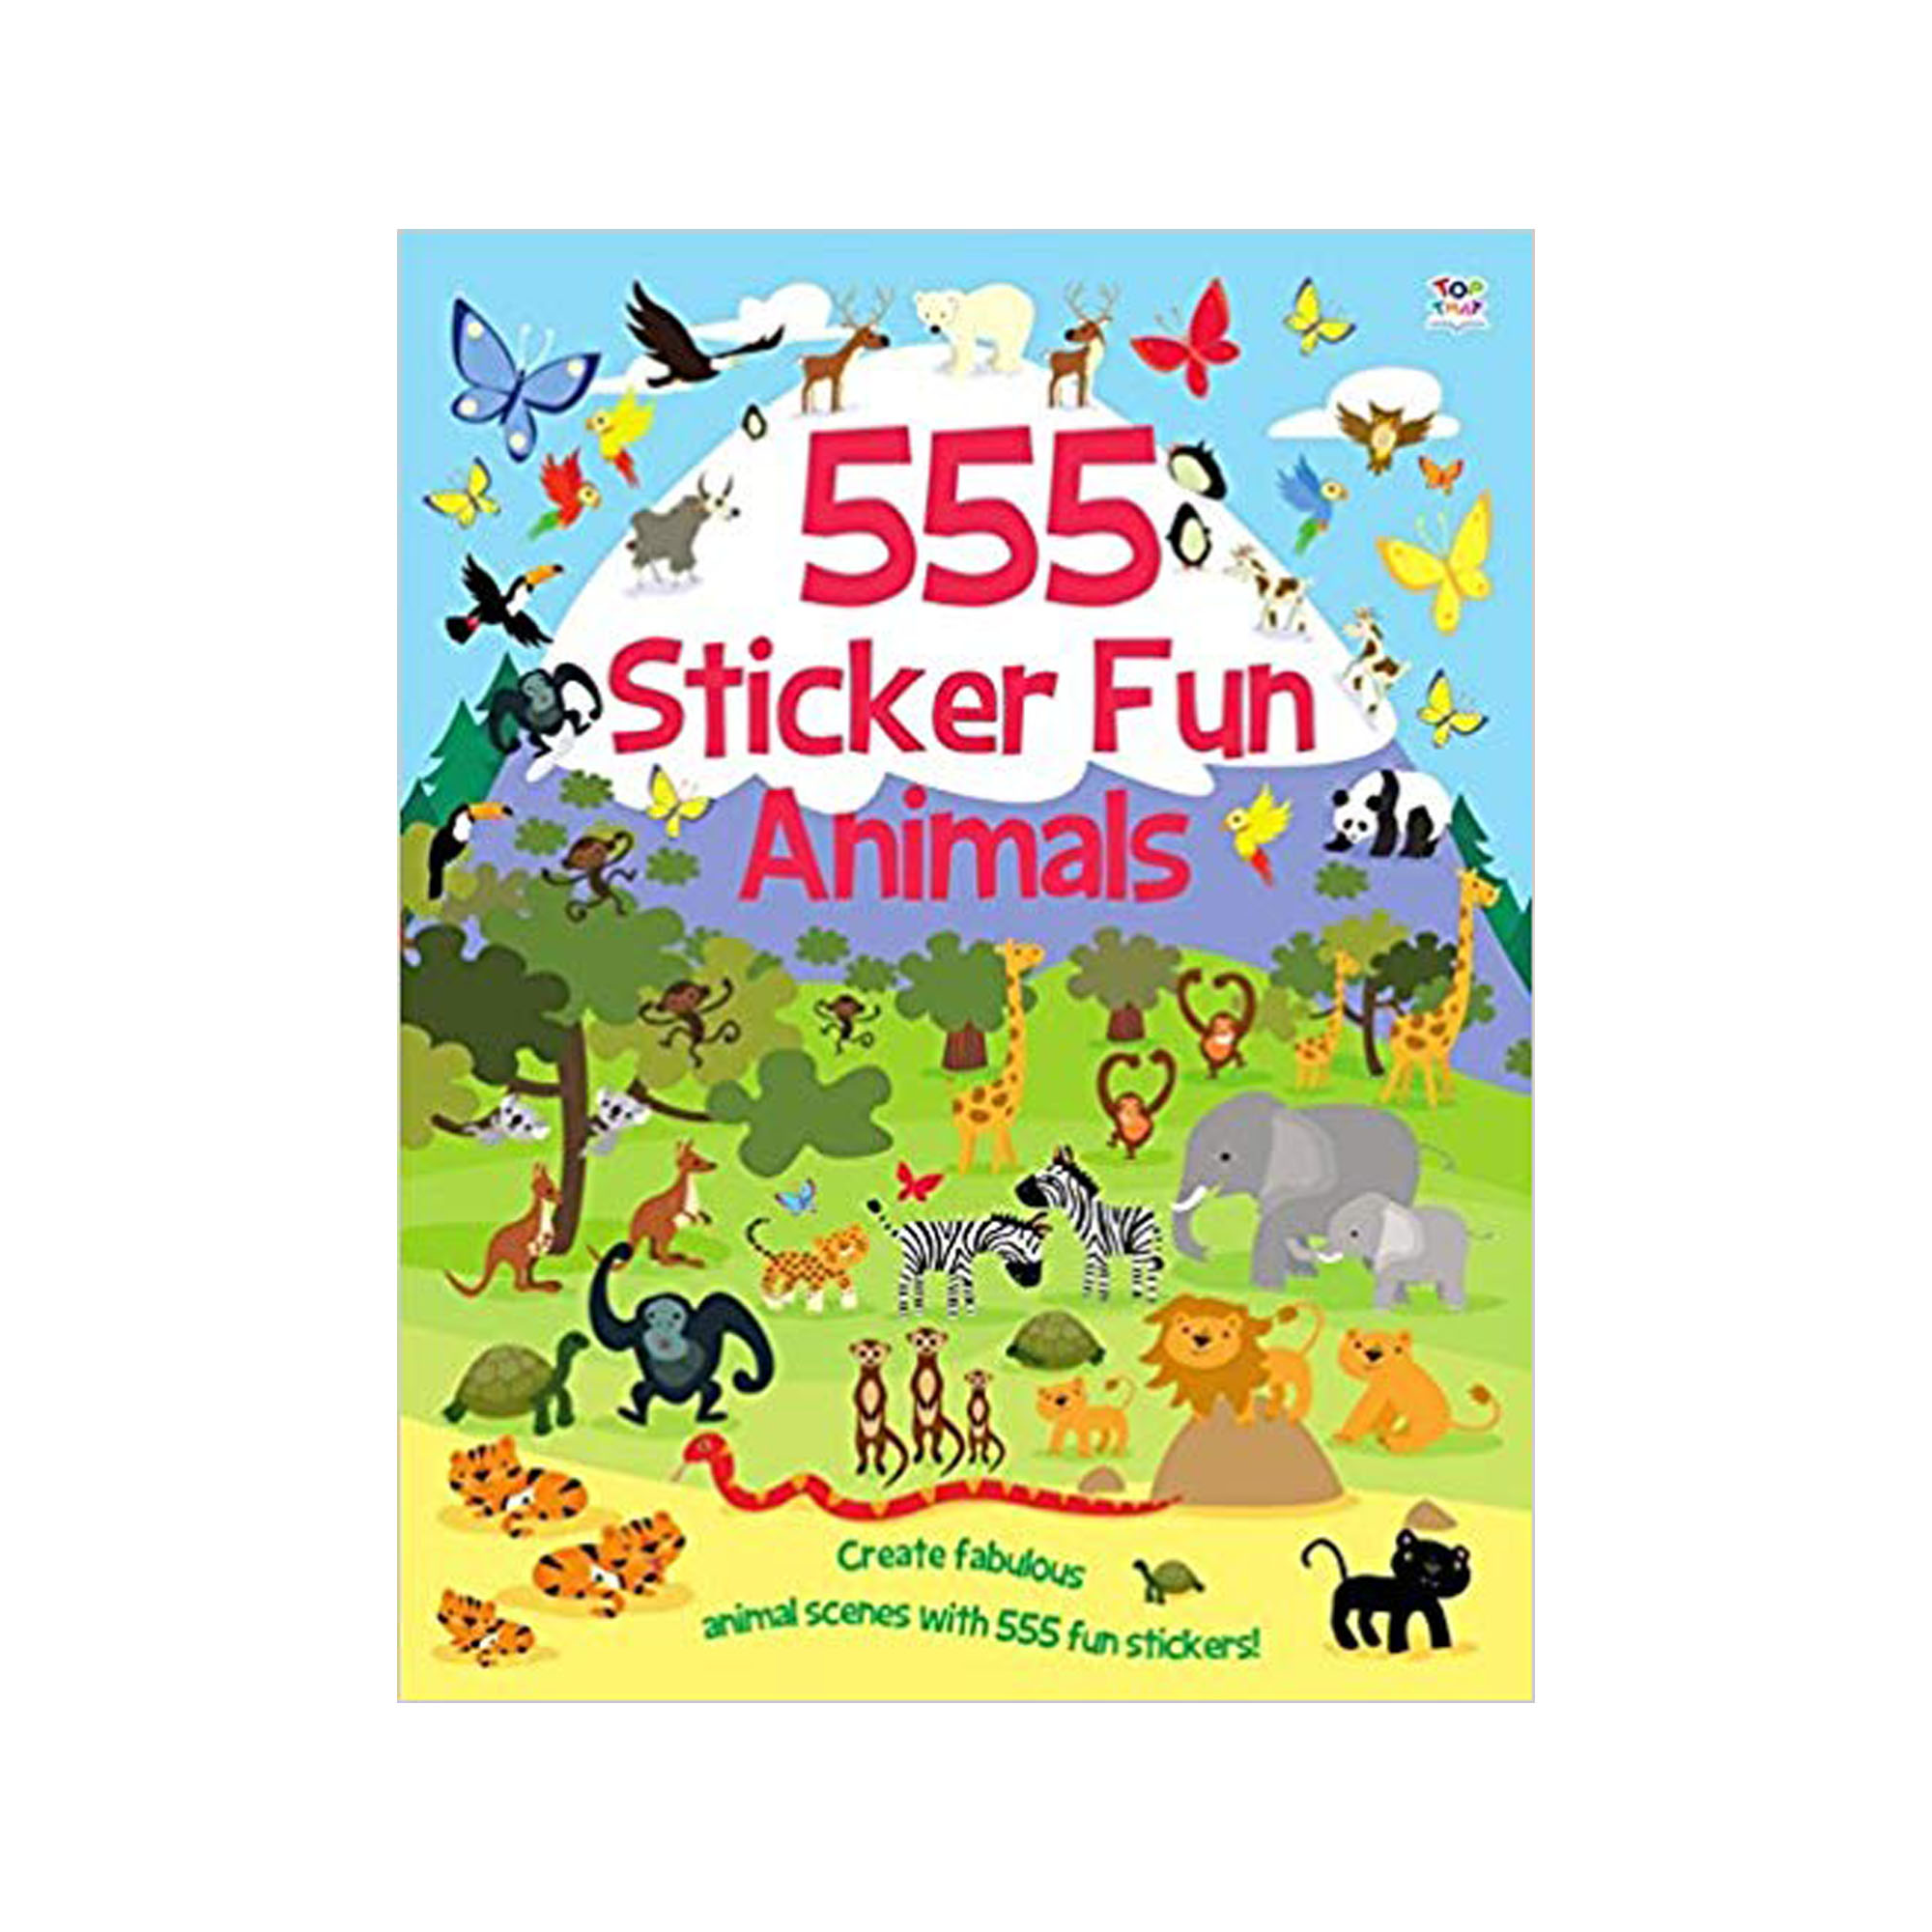 555 Sticker fun animals book